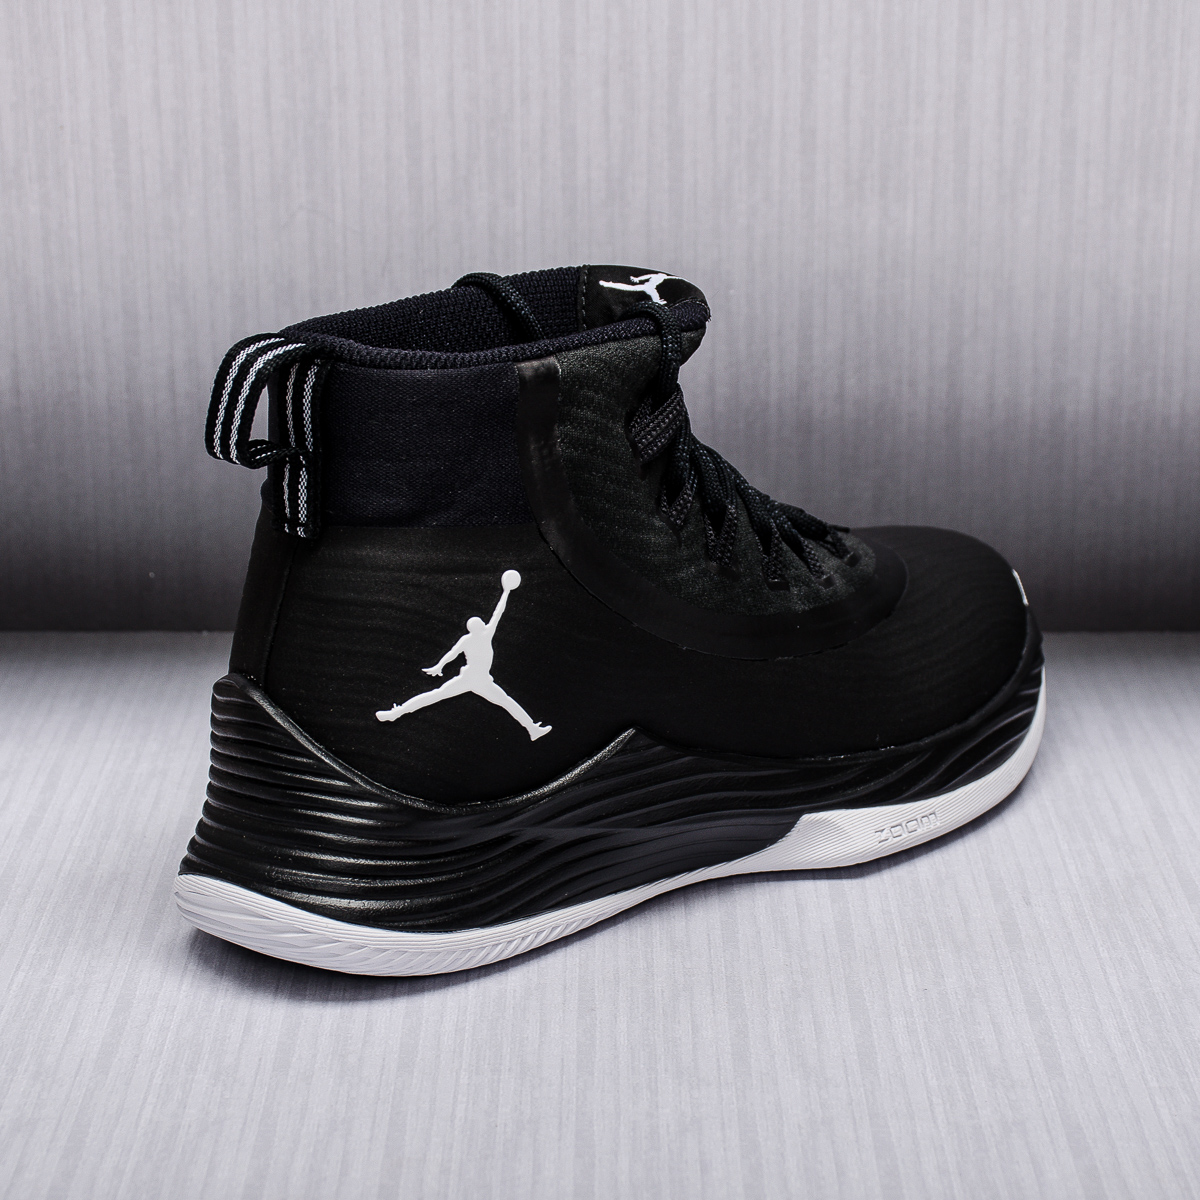 Jordan Ultra Fly 2 Basketball Shoes (Size 40.5) - BASKETBALL SHOES ... bf65e0822